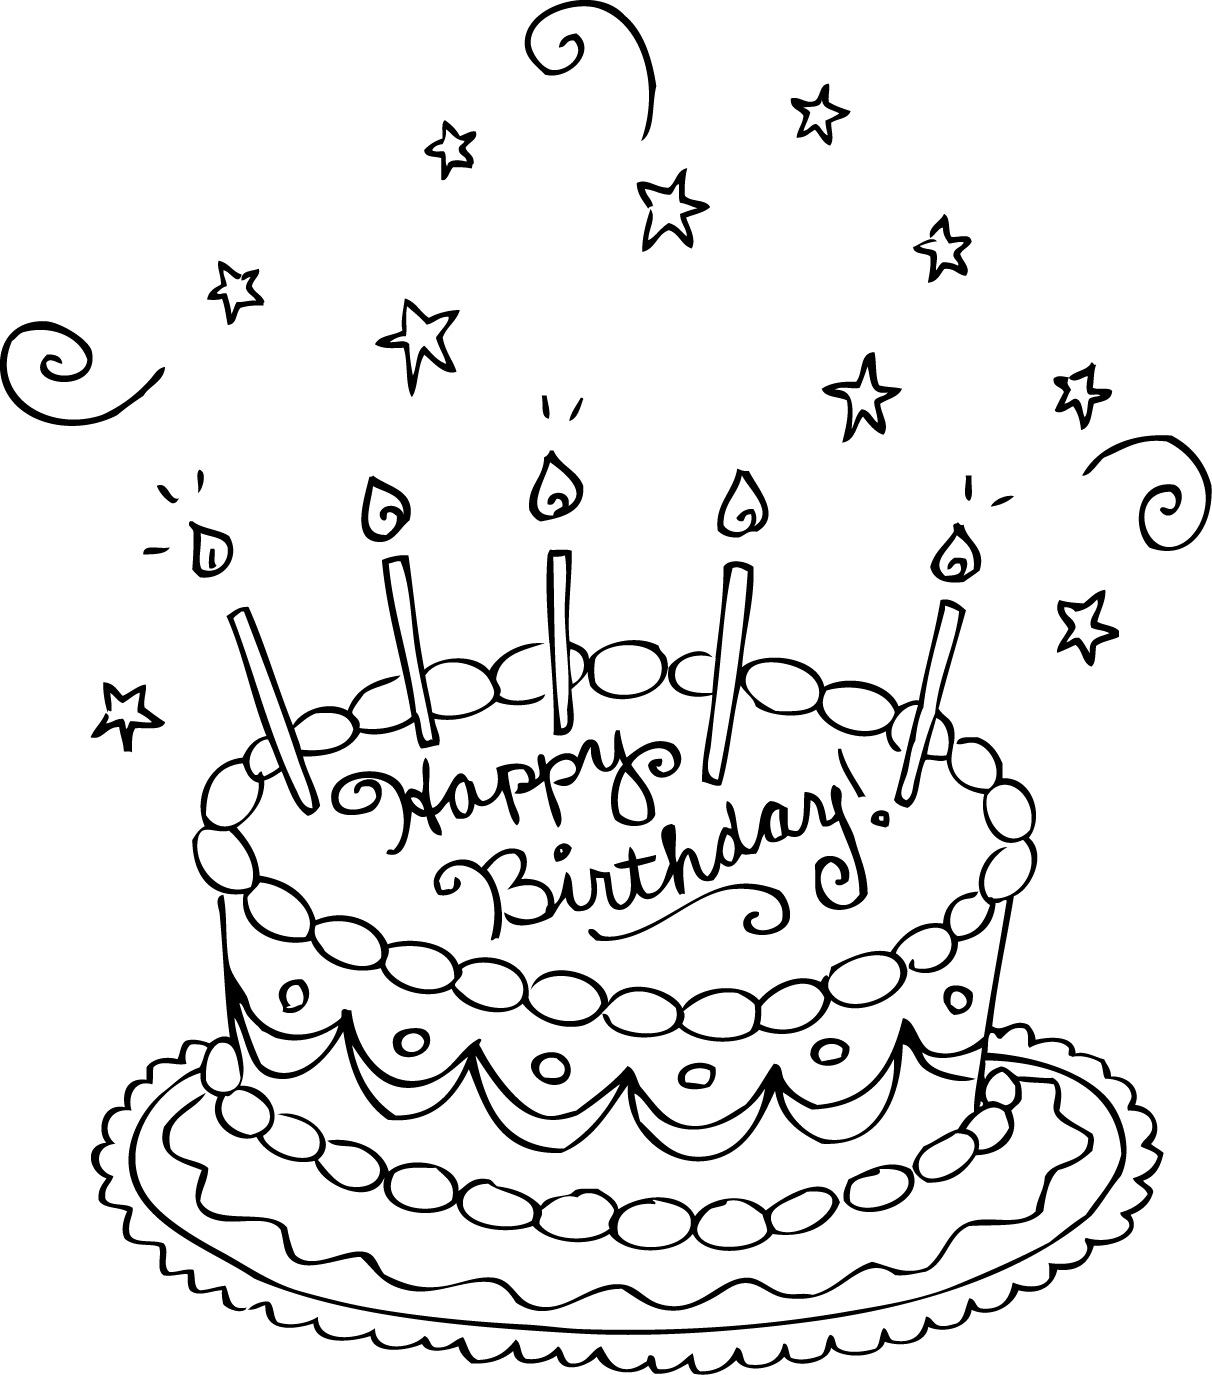 birthday cake printable coloring pages free printable birthday cake coloring pages for kids pages coloring printable cake birthday